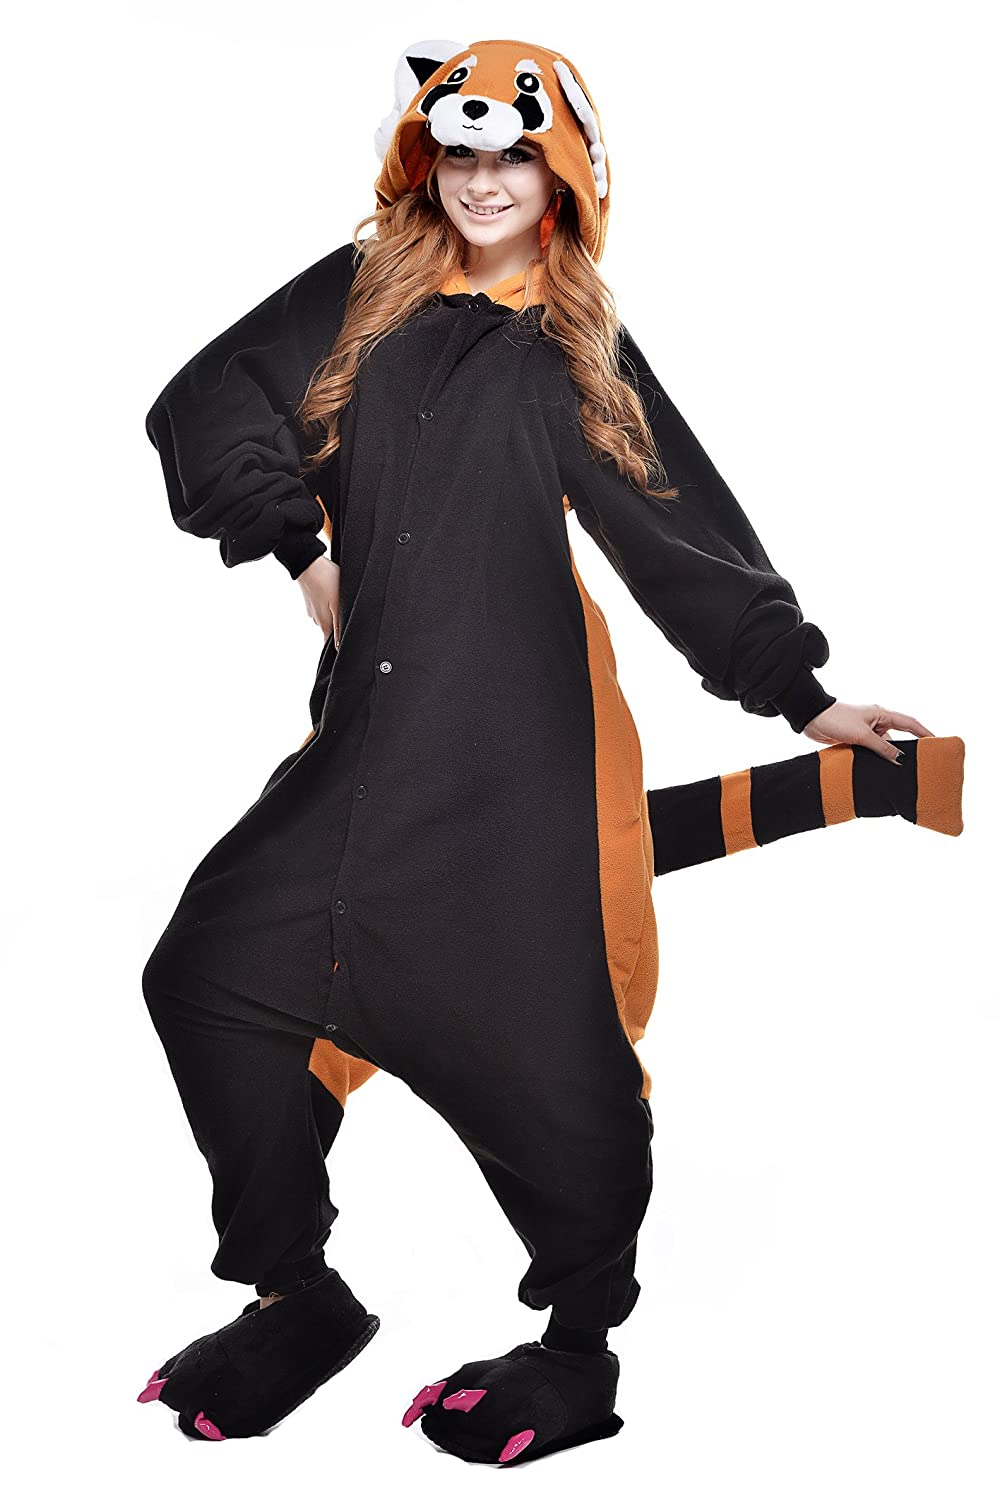 58fa99e927 Amazon.com  CANASOUR Polar Fleece Adult Chrismas Red Panda Party Unisex Women s  Onesie Pajama  Clothing